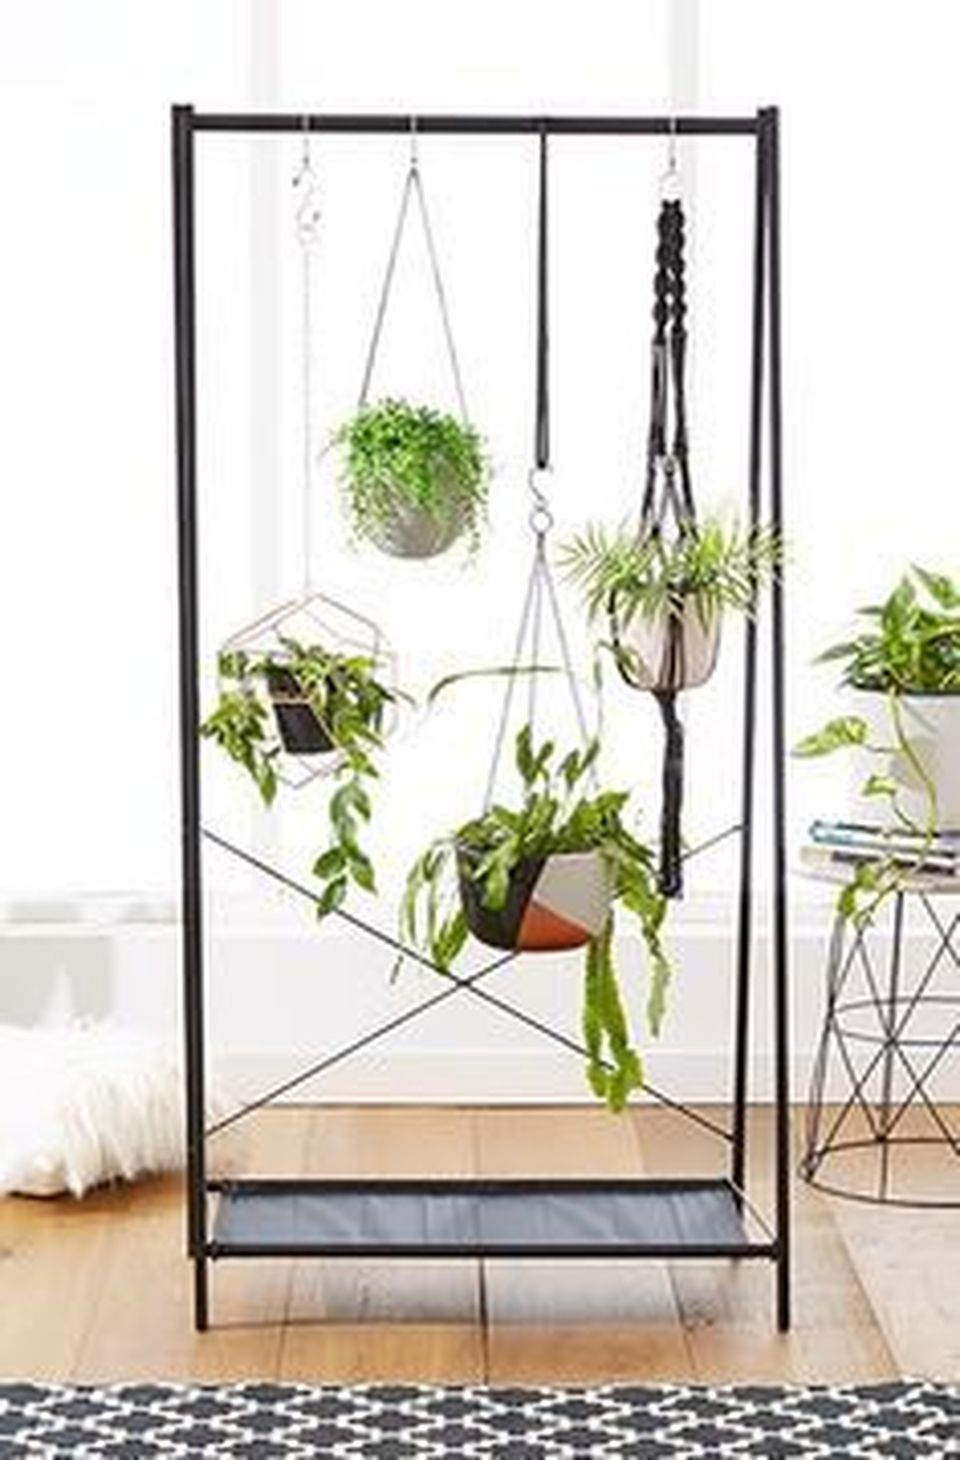 Cool Plant Stand Design Ideas for Indoor Houseplant ... on Hanging Plants Stand Design  id=81756